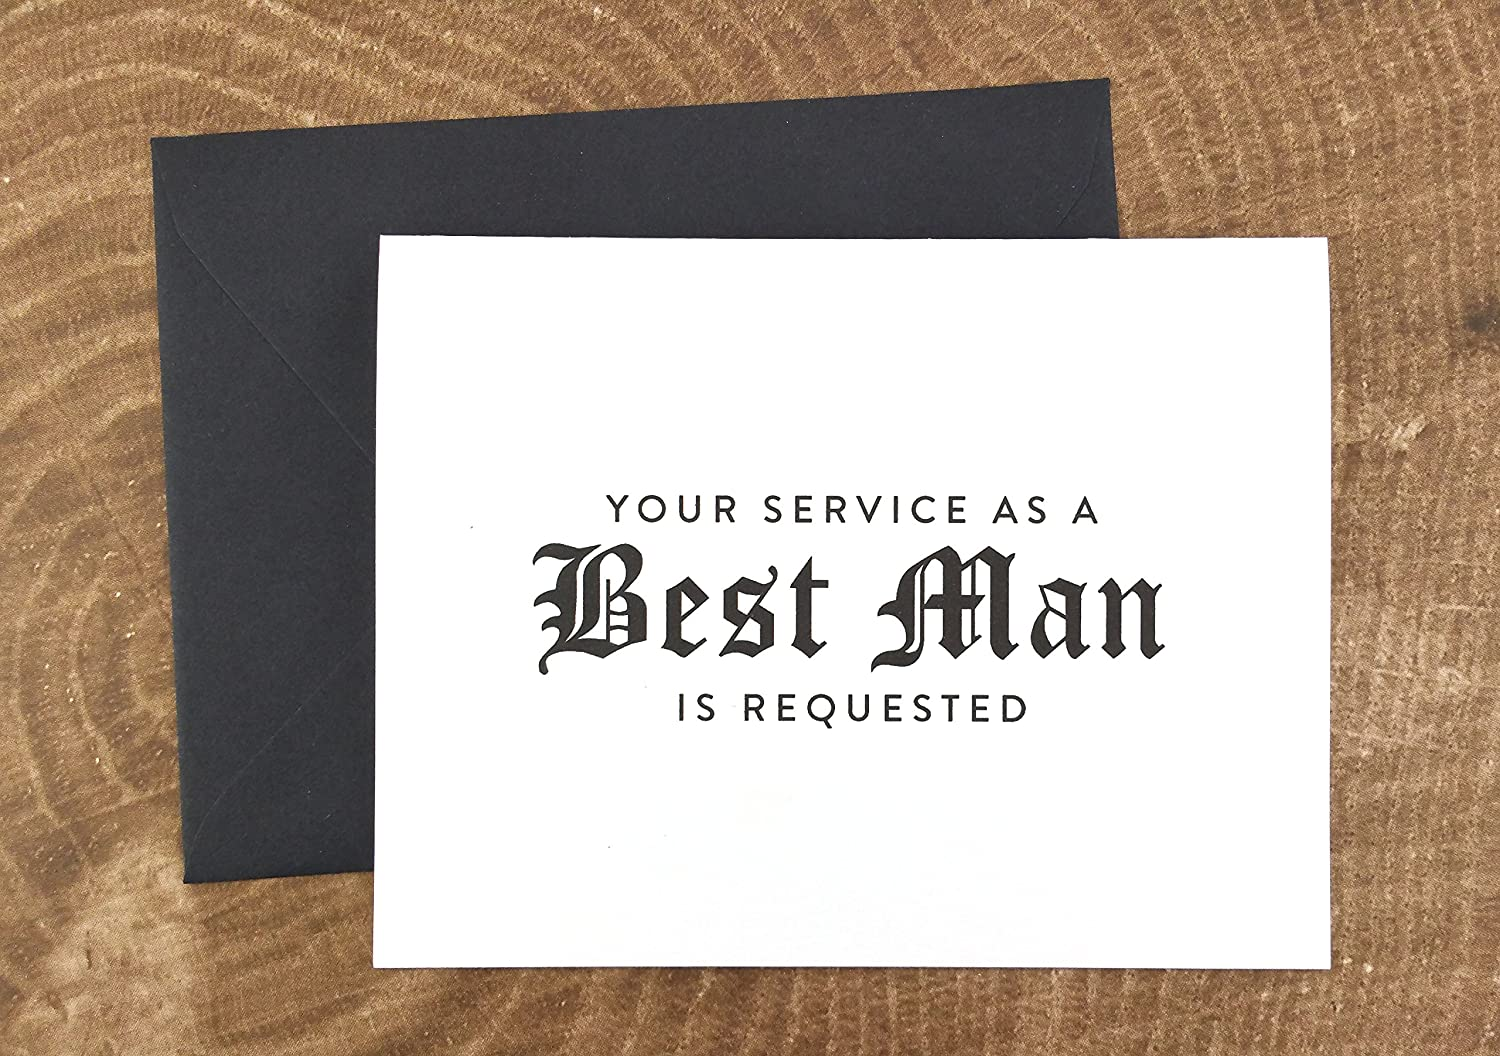 Amazon Com Will You Be My Best Man Card Your Service As A Best Man Is Requested Card Wedding Card Fps0011 Handmade